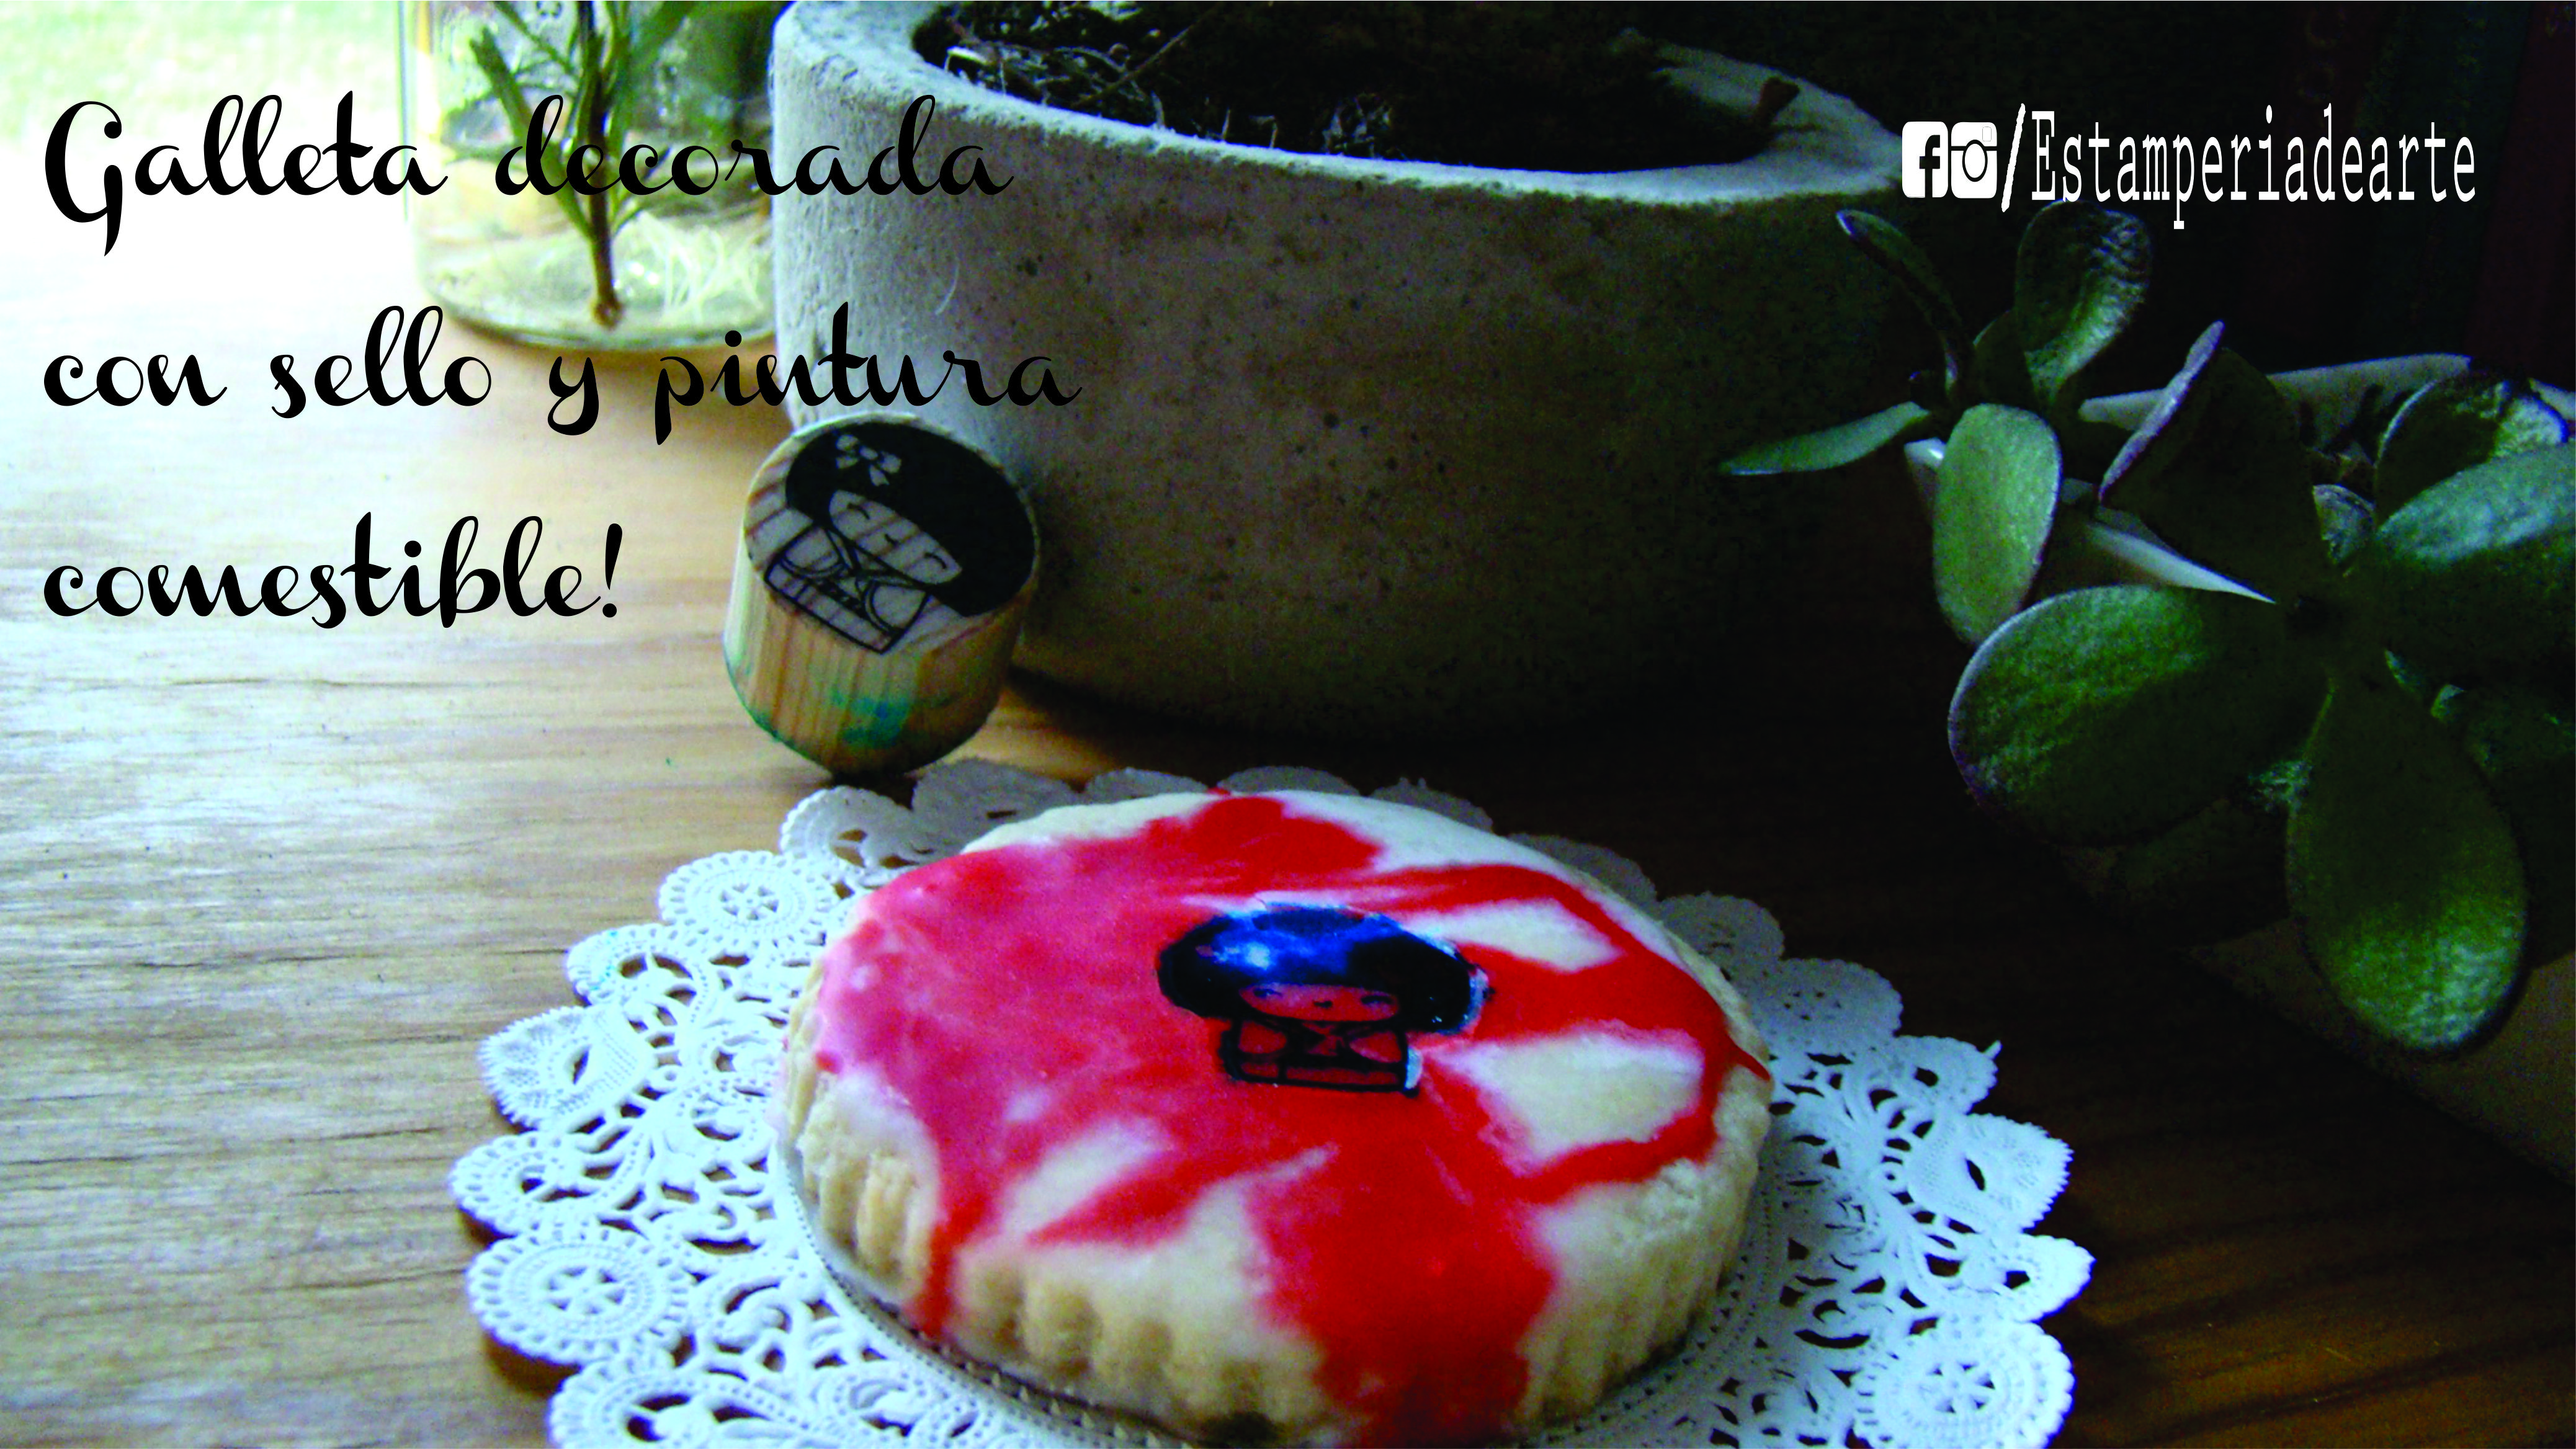 galleta decorada con sello